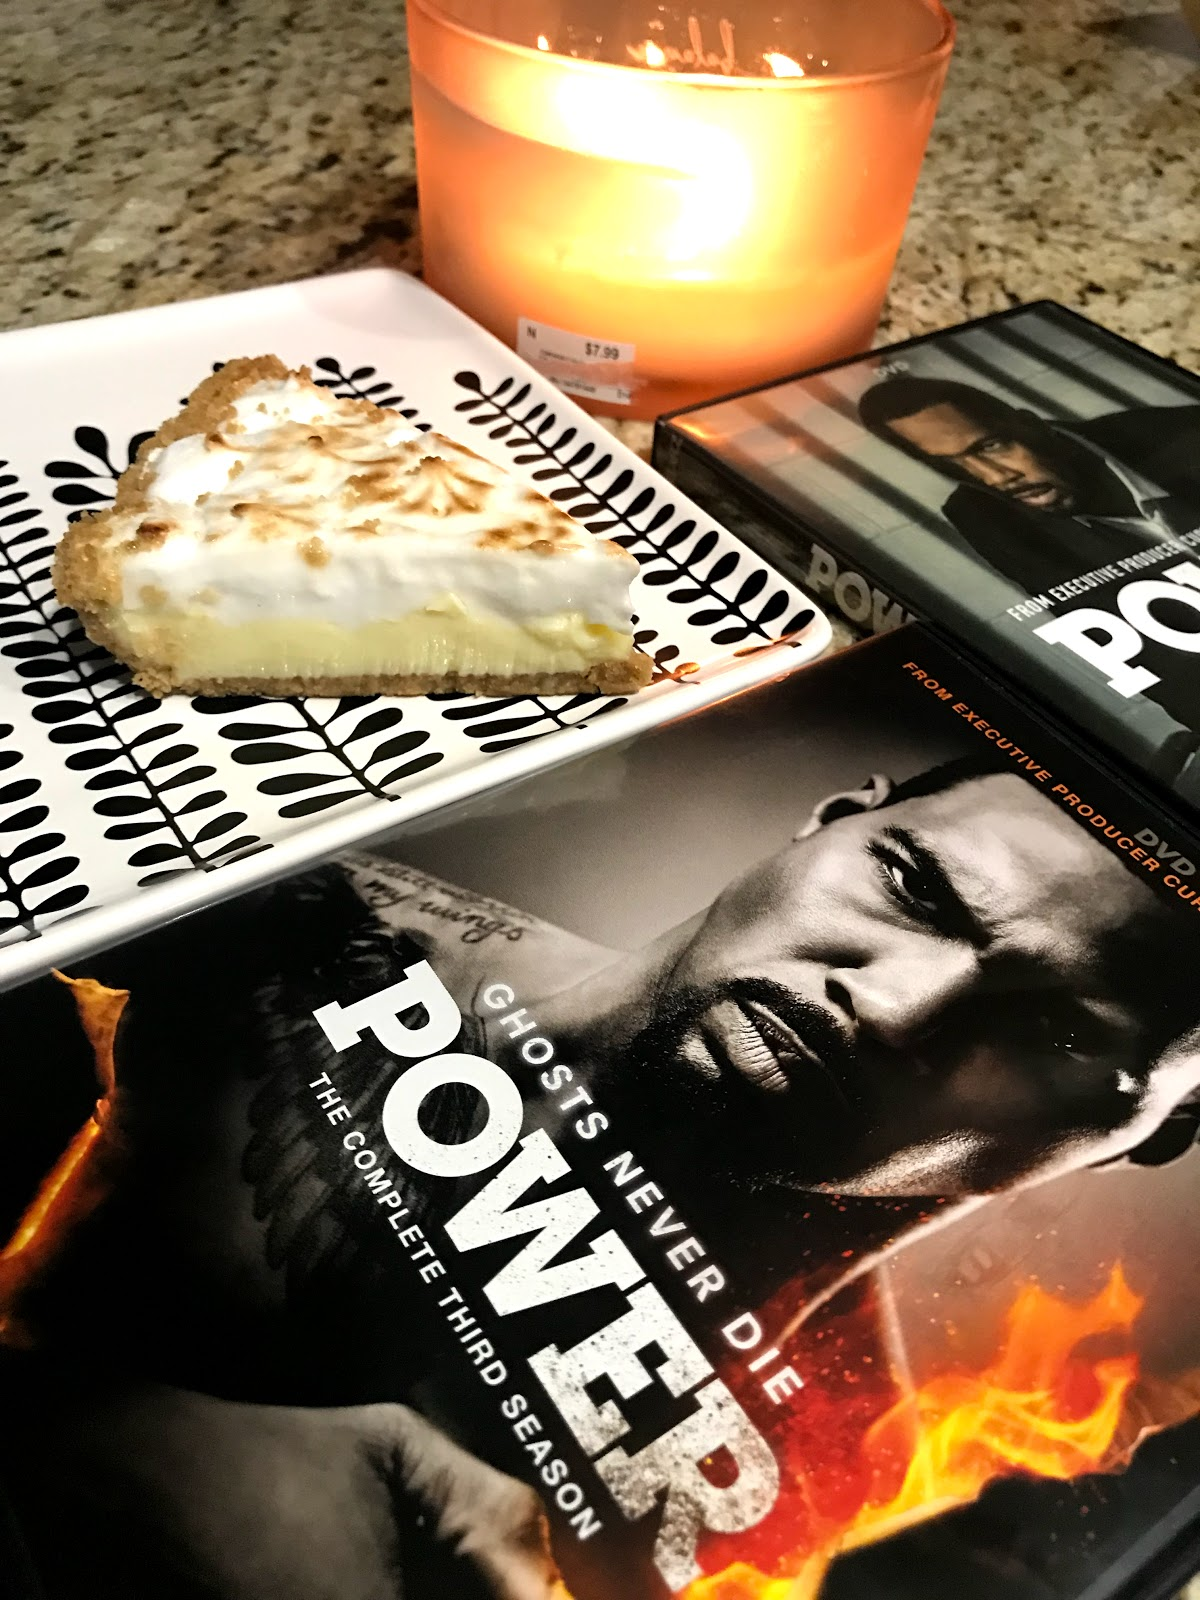 Image:Lemon  Pie and Power movie on table